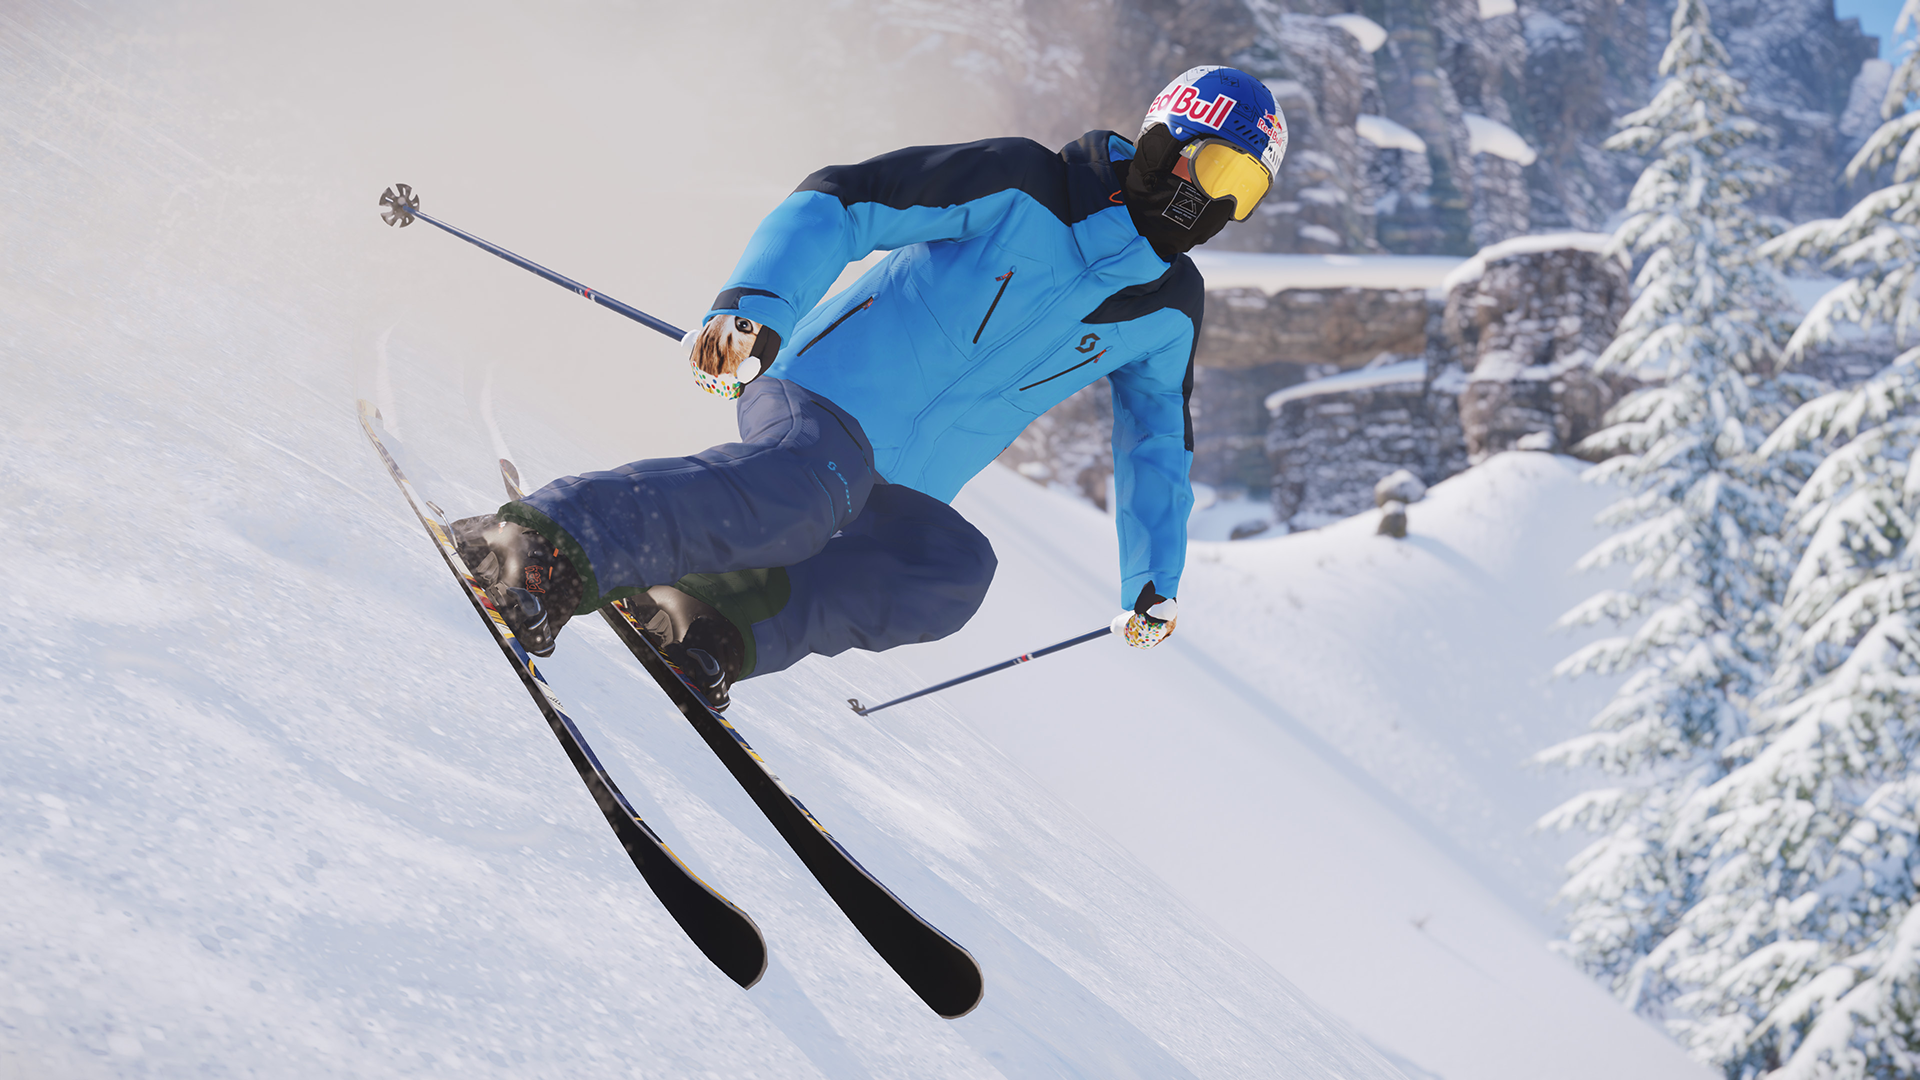 SNOW Open Beta is here. Bring your friends, no skis needed!